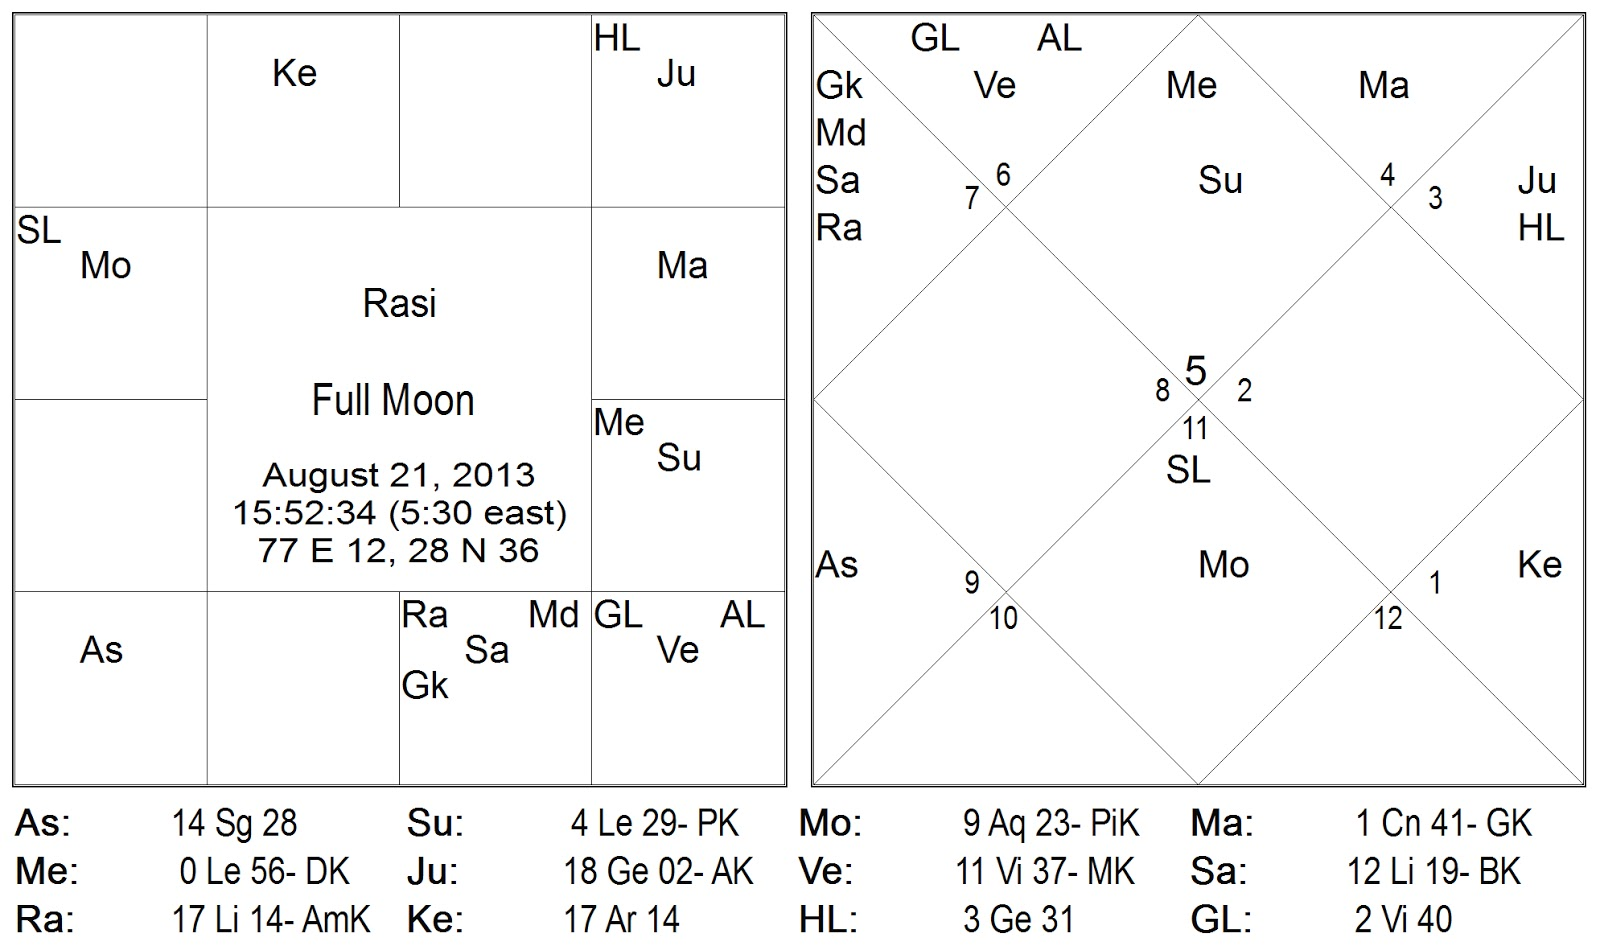 Full moon in aquarius on 20th august 2013